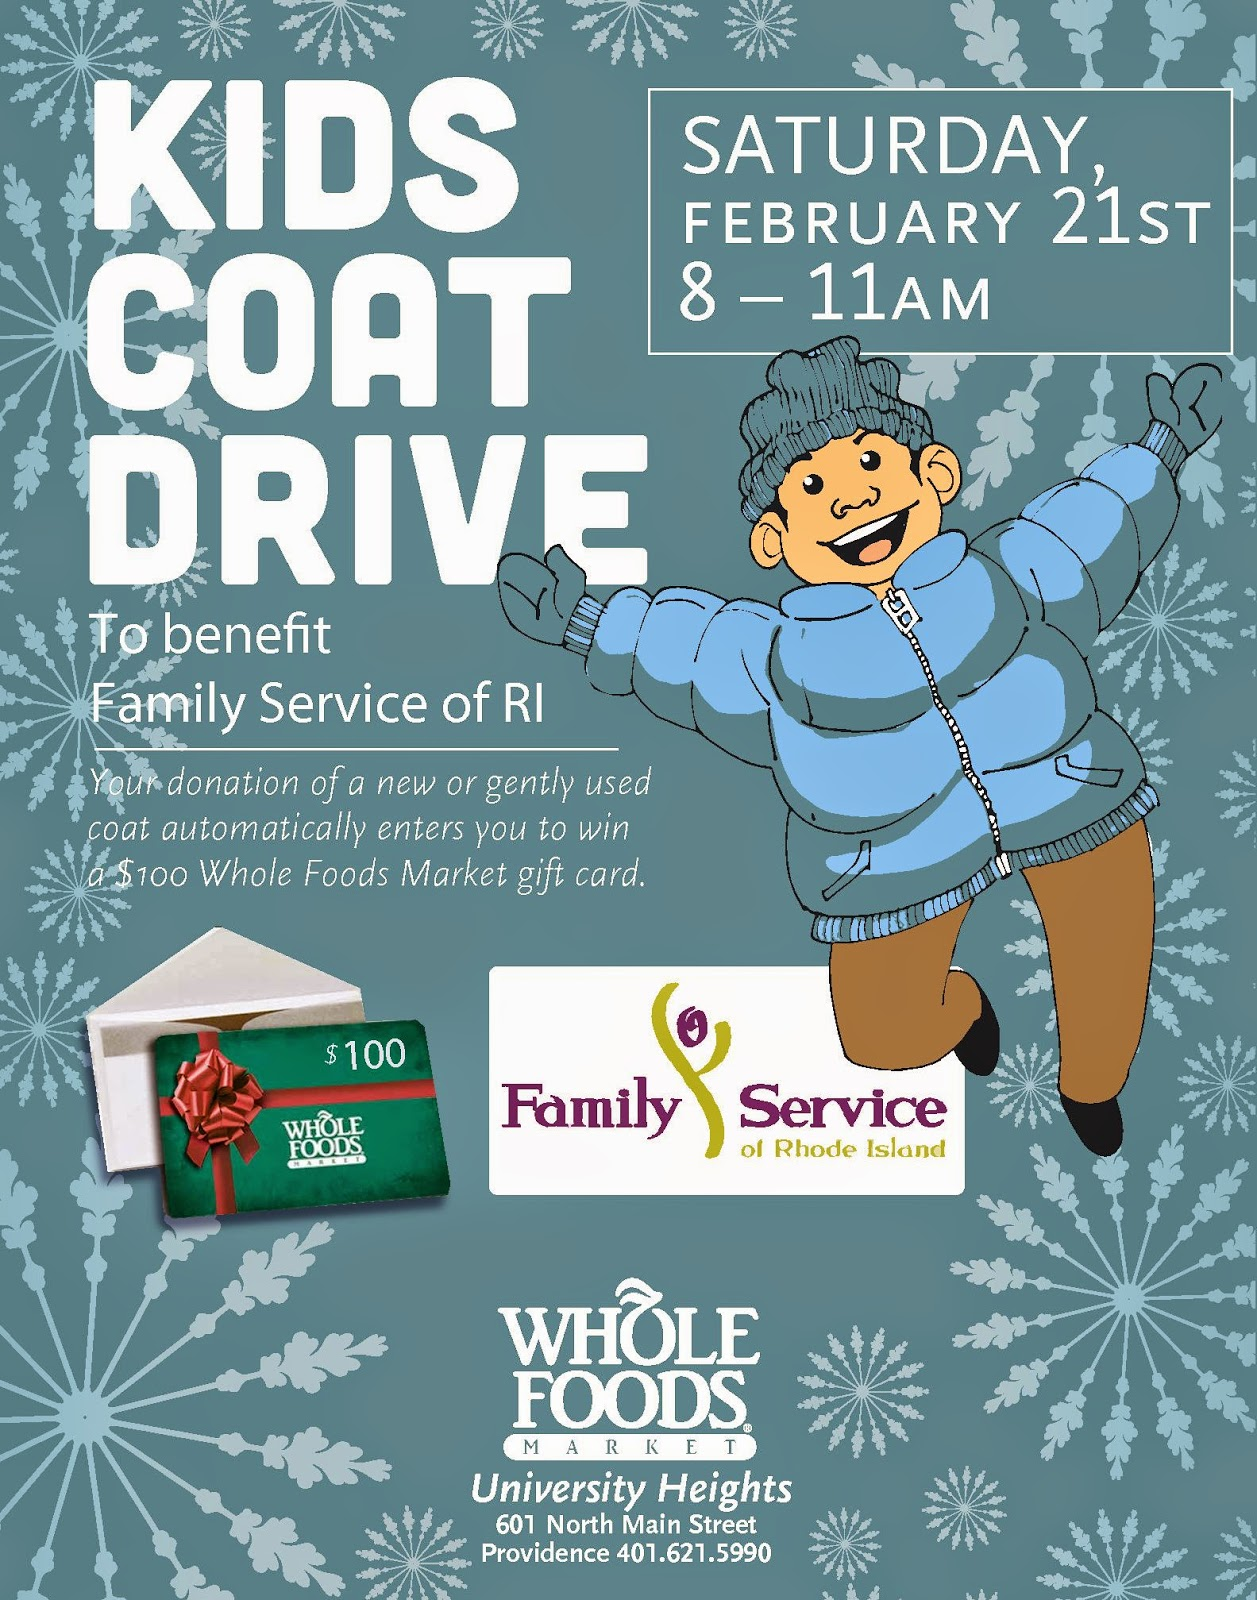 Whole Foods Holding Coat Drive to Benefit Family Service of RI